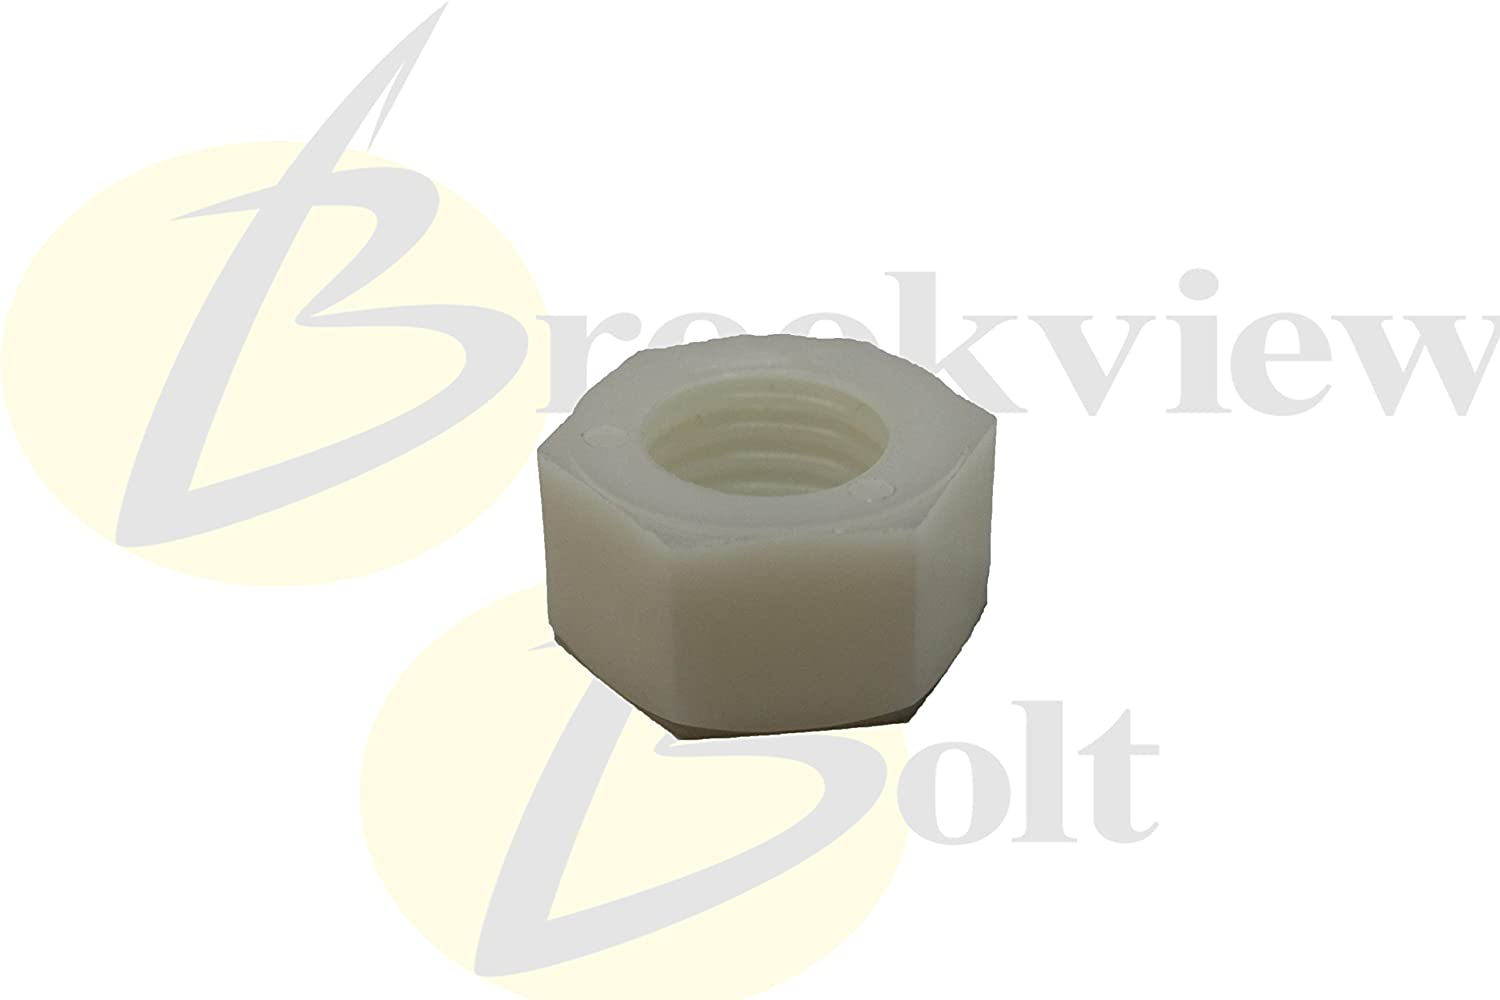 3//8-16 Thread Size Small Parts 37CNFHN Hex Nut Pack of 50 Nylon